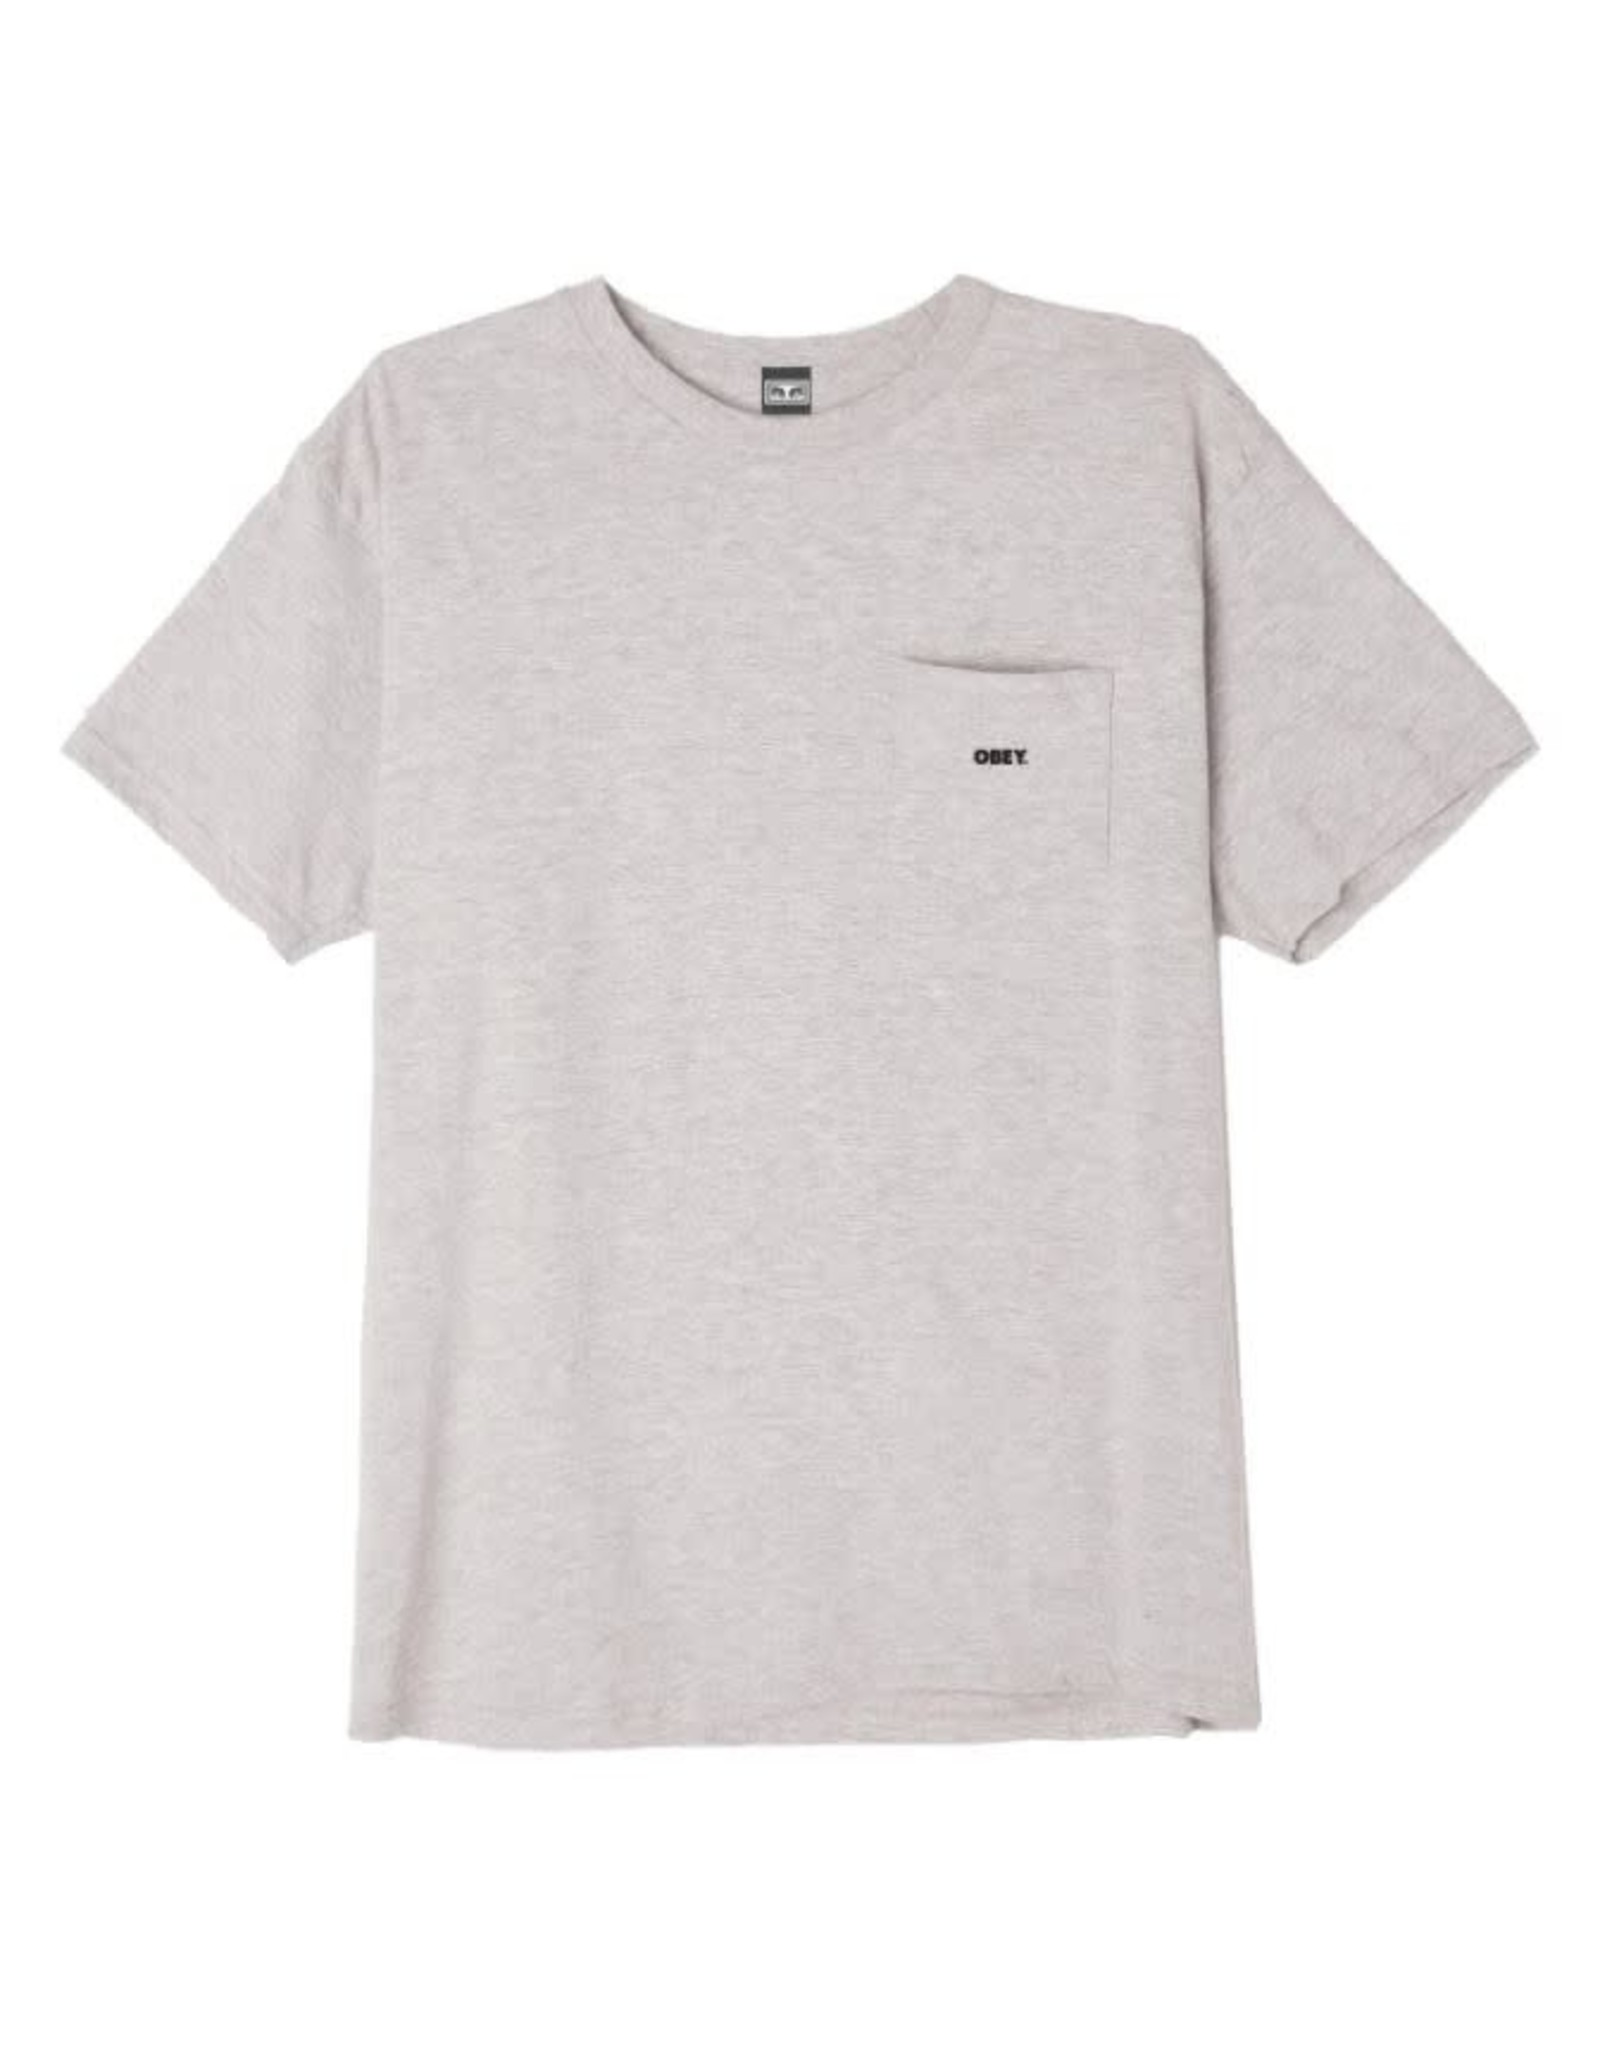 Obey Obey - T-shirt homme obey bold knit heather grey